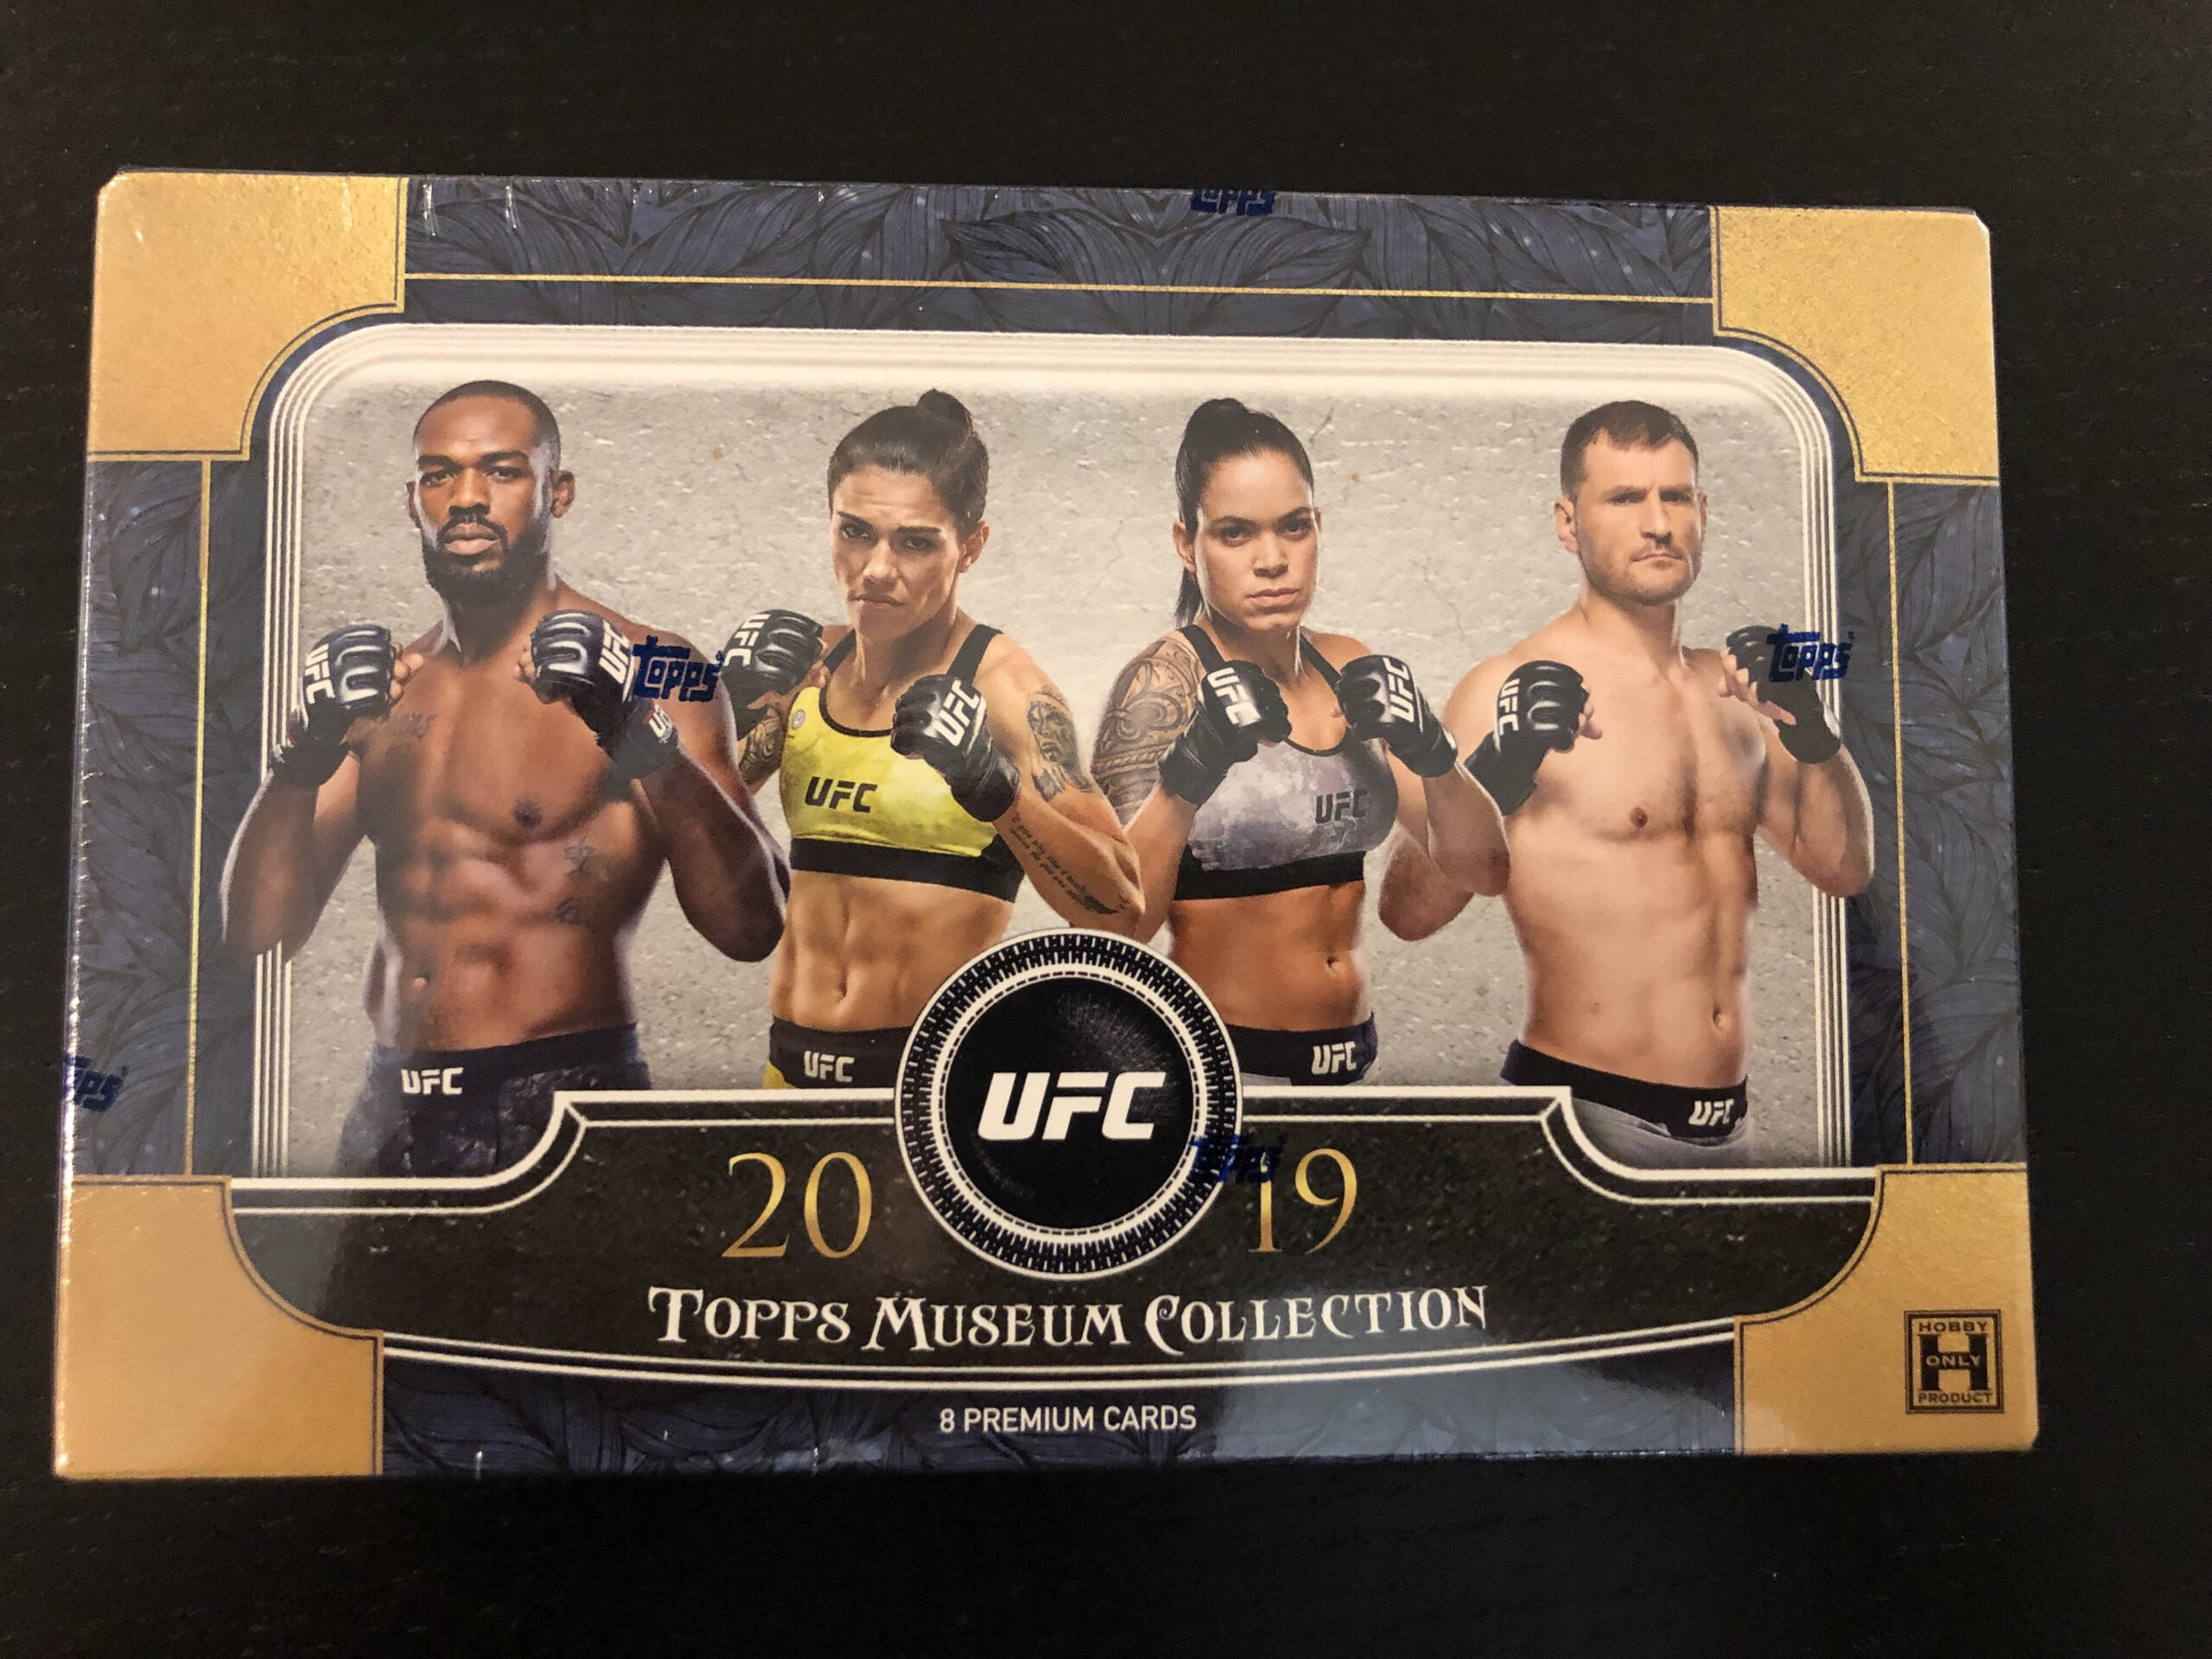 Inside the Pack: 2019 Topps UFC Museum Collection